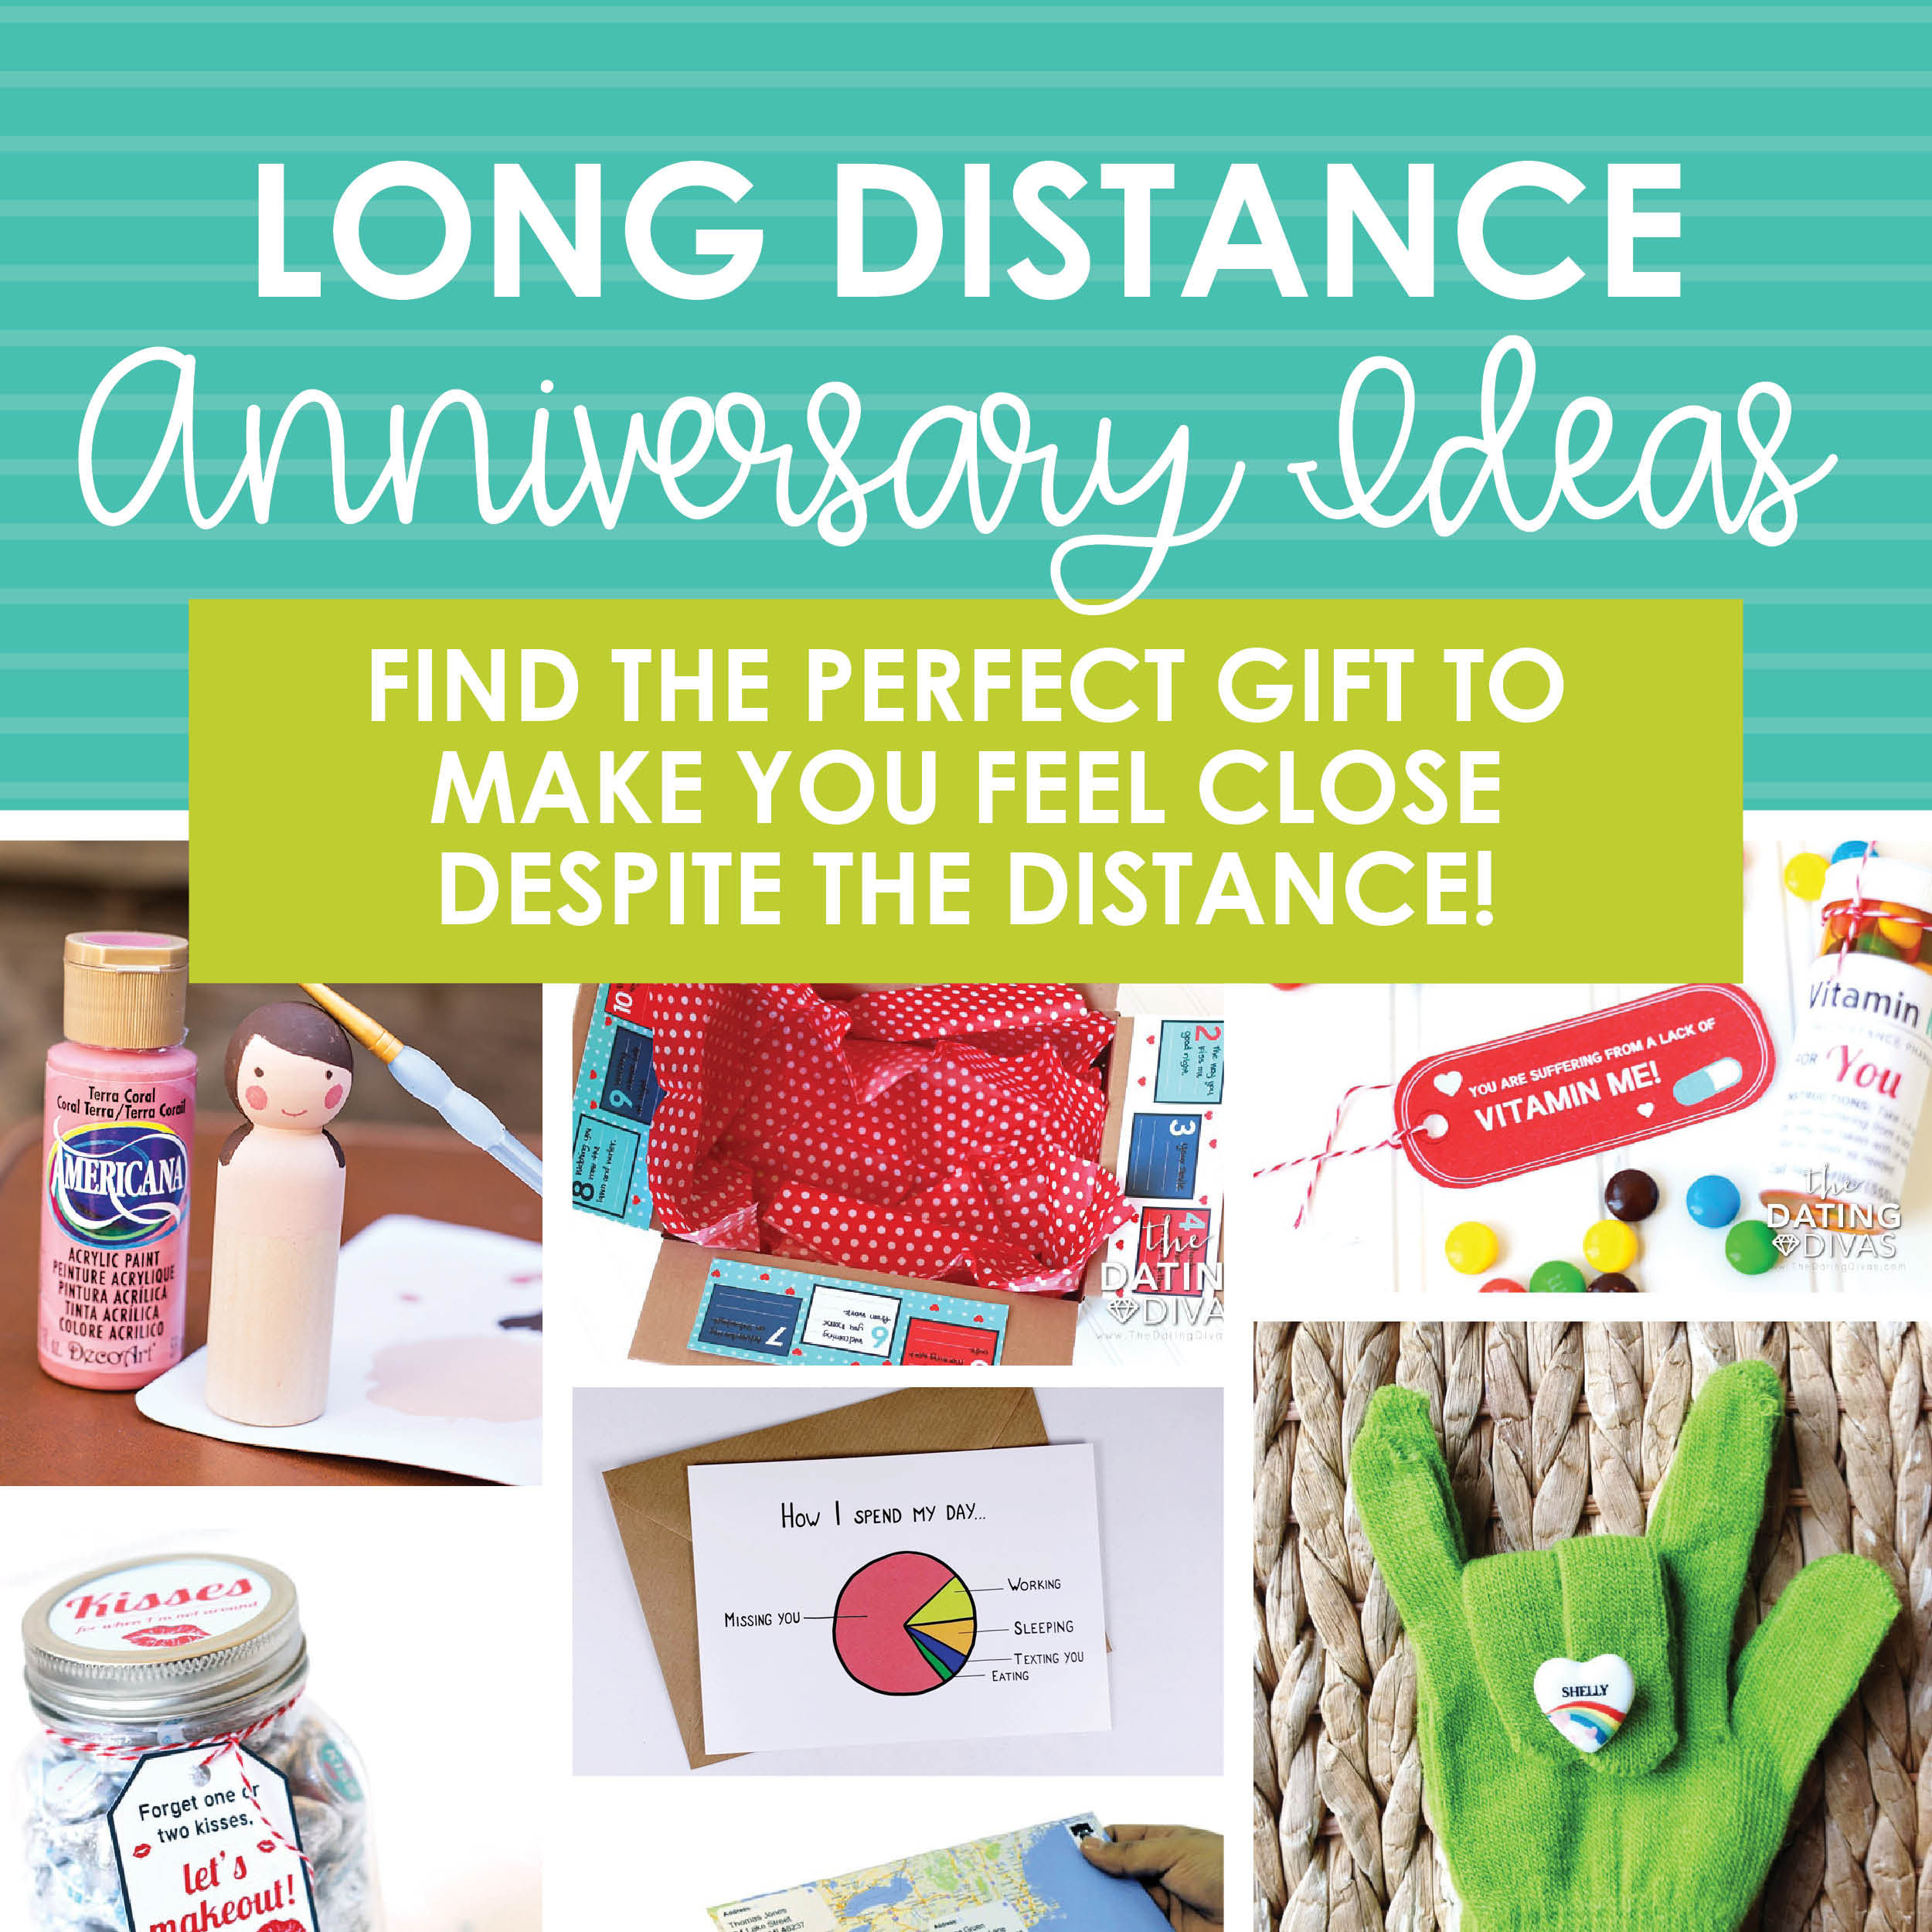 Third Wedding Anniversary Gift Ideas For Her: Long Distance Anniversary Ideas